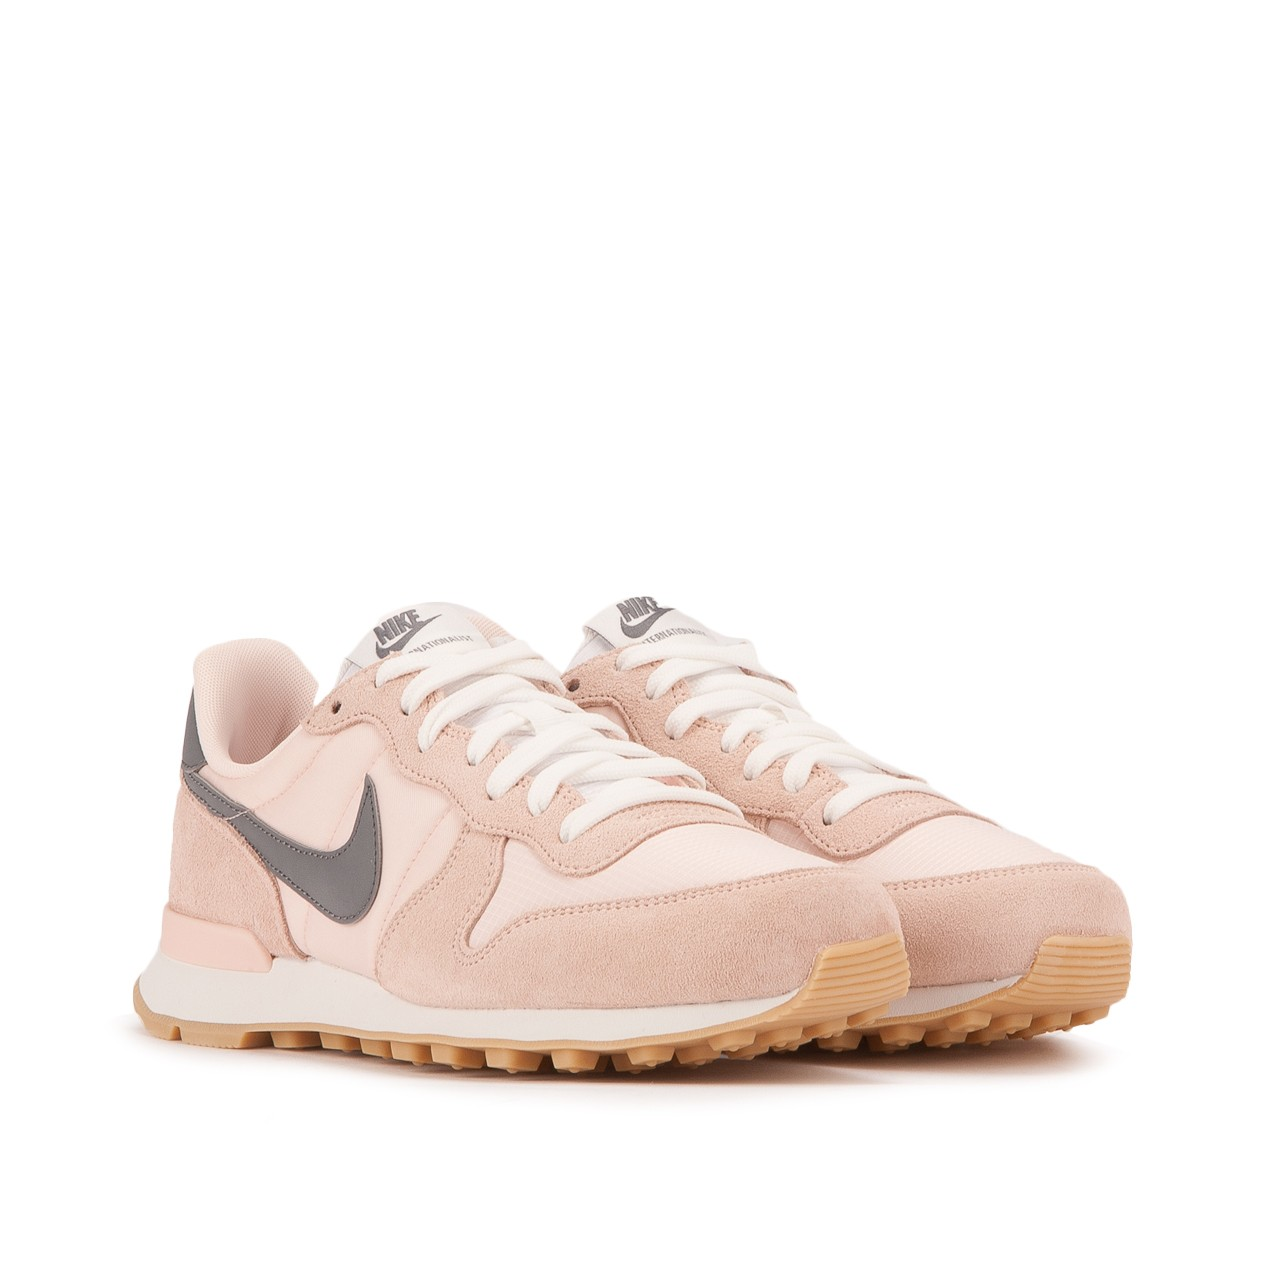 nike internationalist femme beige doré